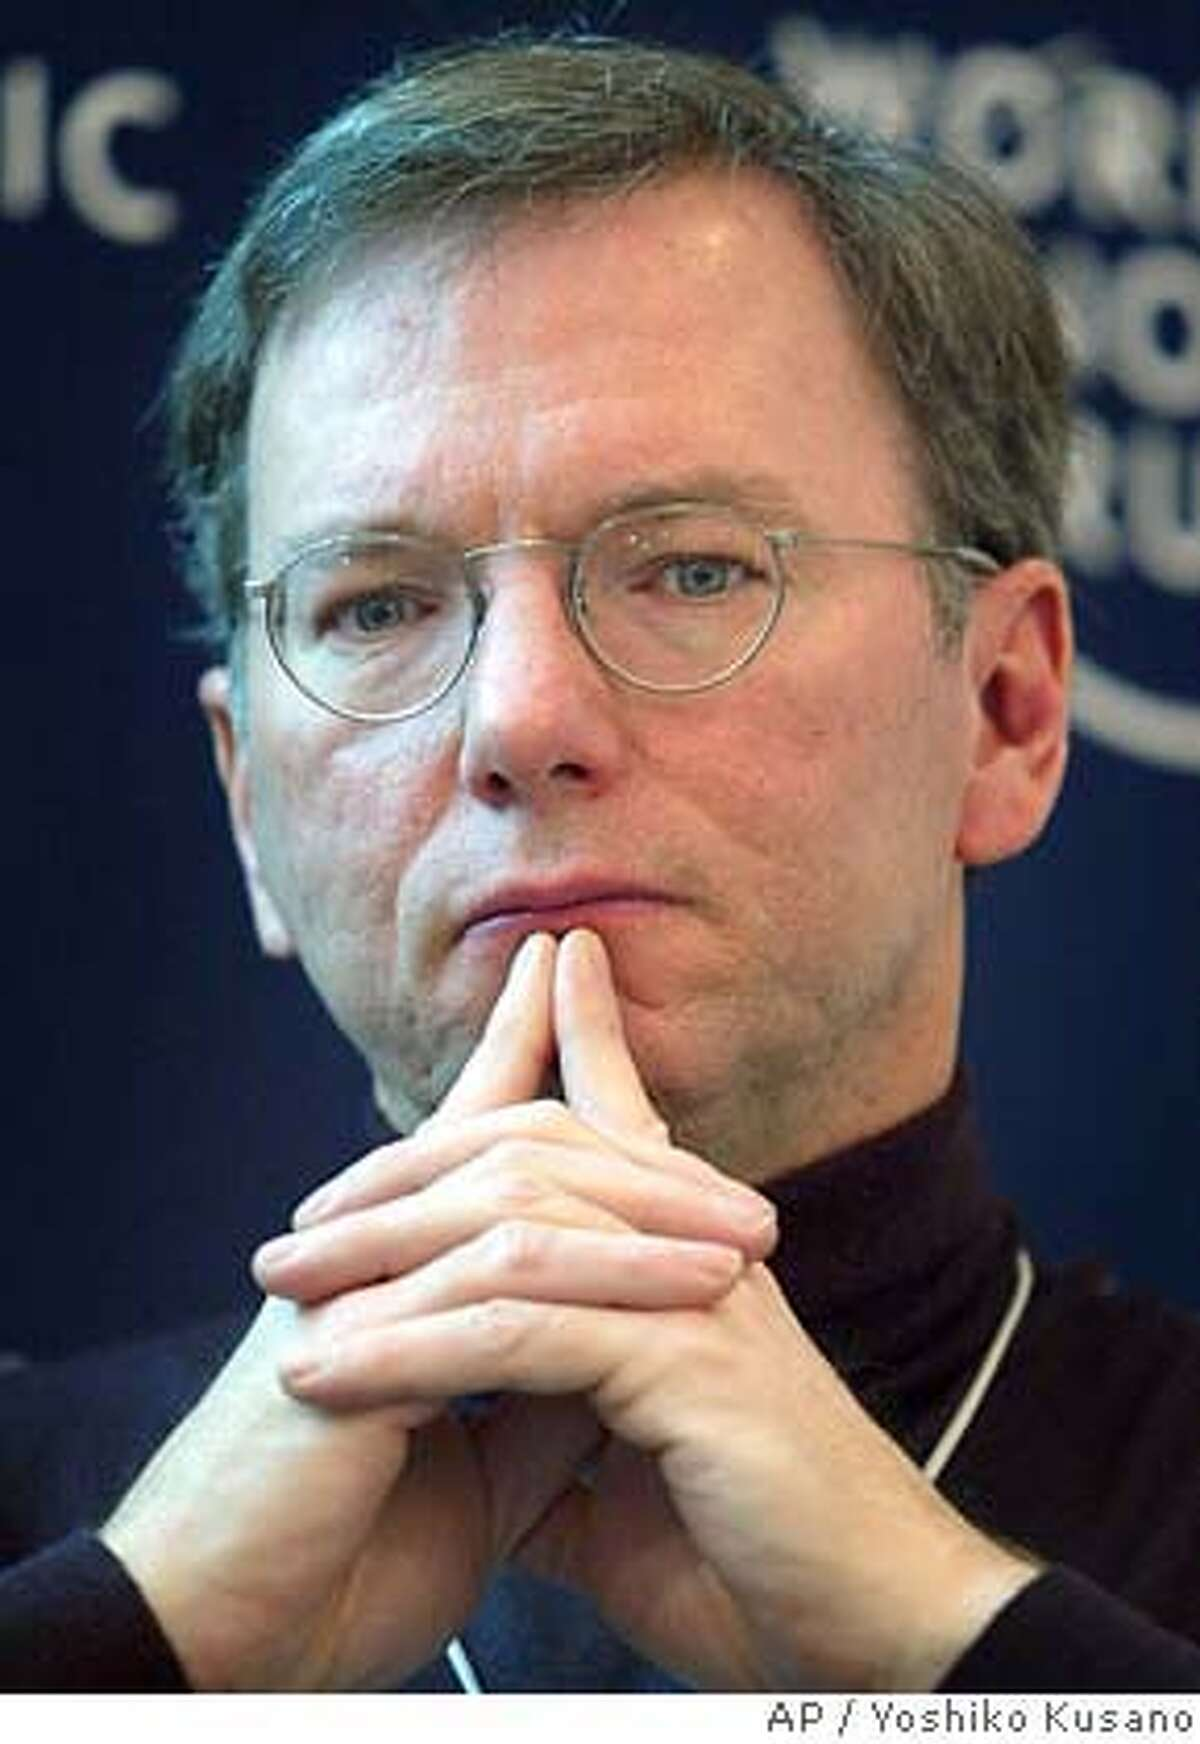 Eric Schmidt, CEO of Google, USA, participates in a panel session at the Annual Meeting of the World Economic Forum in Davos, Switzerland, Friday, Jan. 23, 2004. (AP Photo/ Keystone, Yoshiko Kusano) ALSO Ran on: 12-02-2004 Eric Schmidt, Google's chief executive, is pleased with the IPO's run-up. Ran on: 04-09-2005 ALSO RAN: 05/11/2005 ALSO Ran on: 06-22-2005 Ran on: 08-09-2005 Google has blackballed Cnet for its story using information it googled on CEO Eric Schmidt. Ran on: 08-09-2005 Mike Nolan